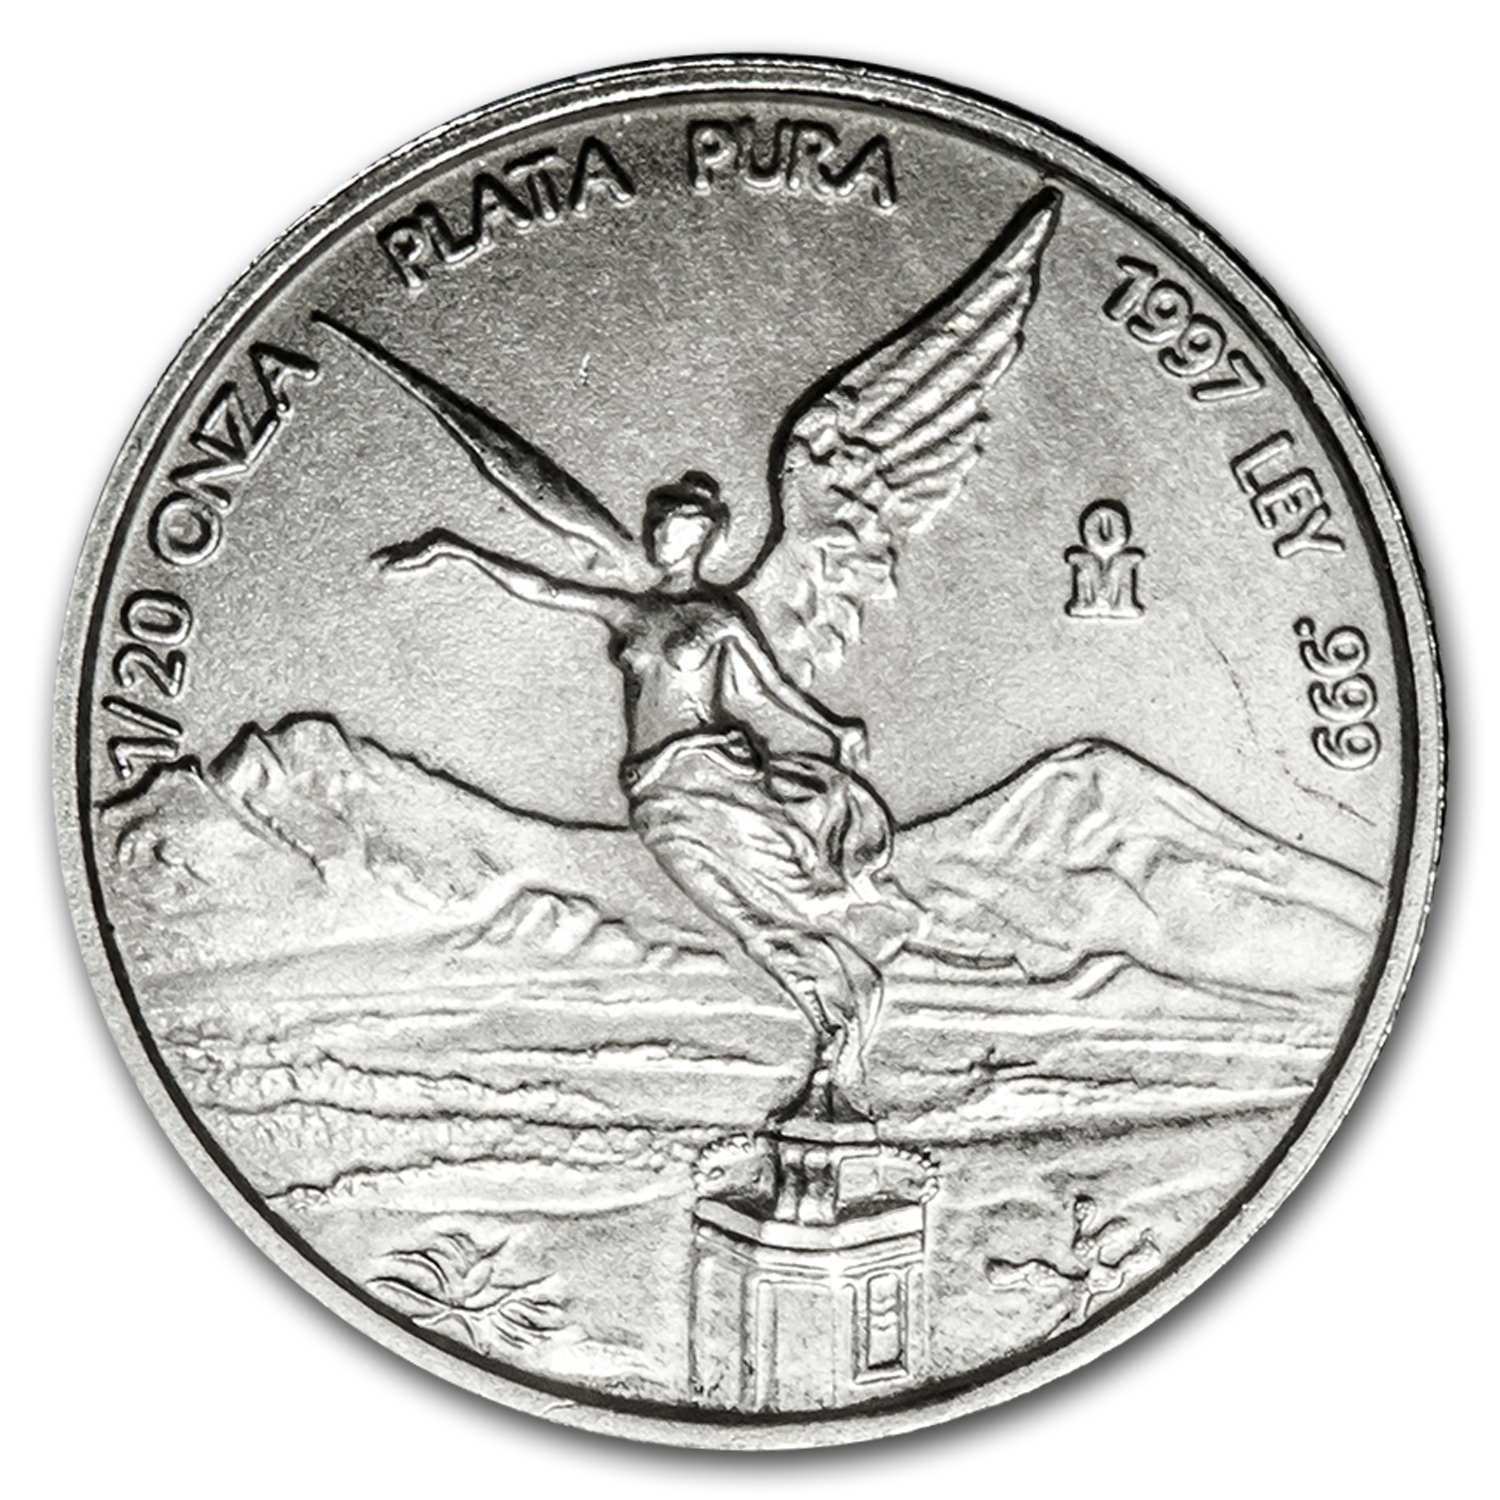 1997 1/20 oz Silver Mexican Libertad (Brilliant Uncirculated)